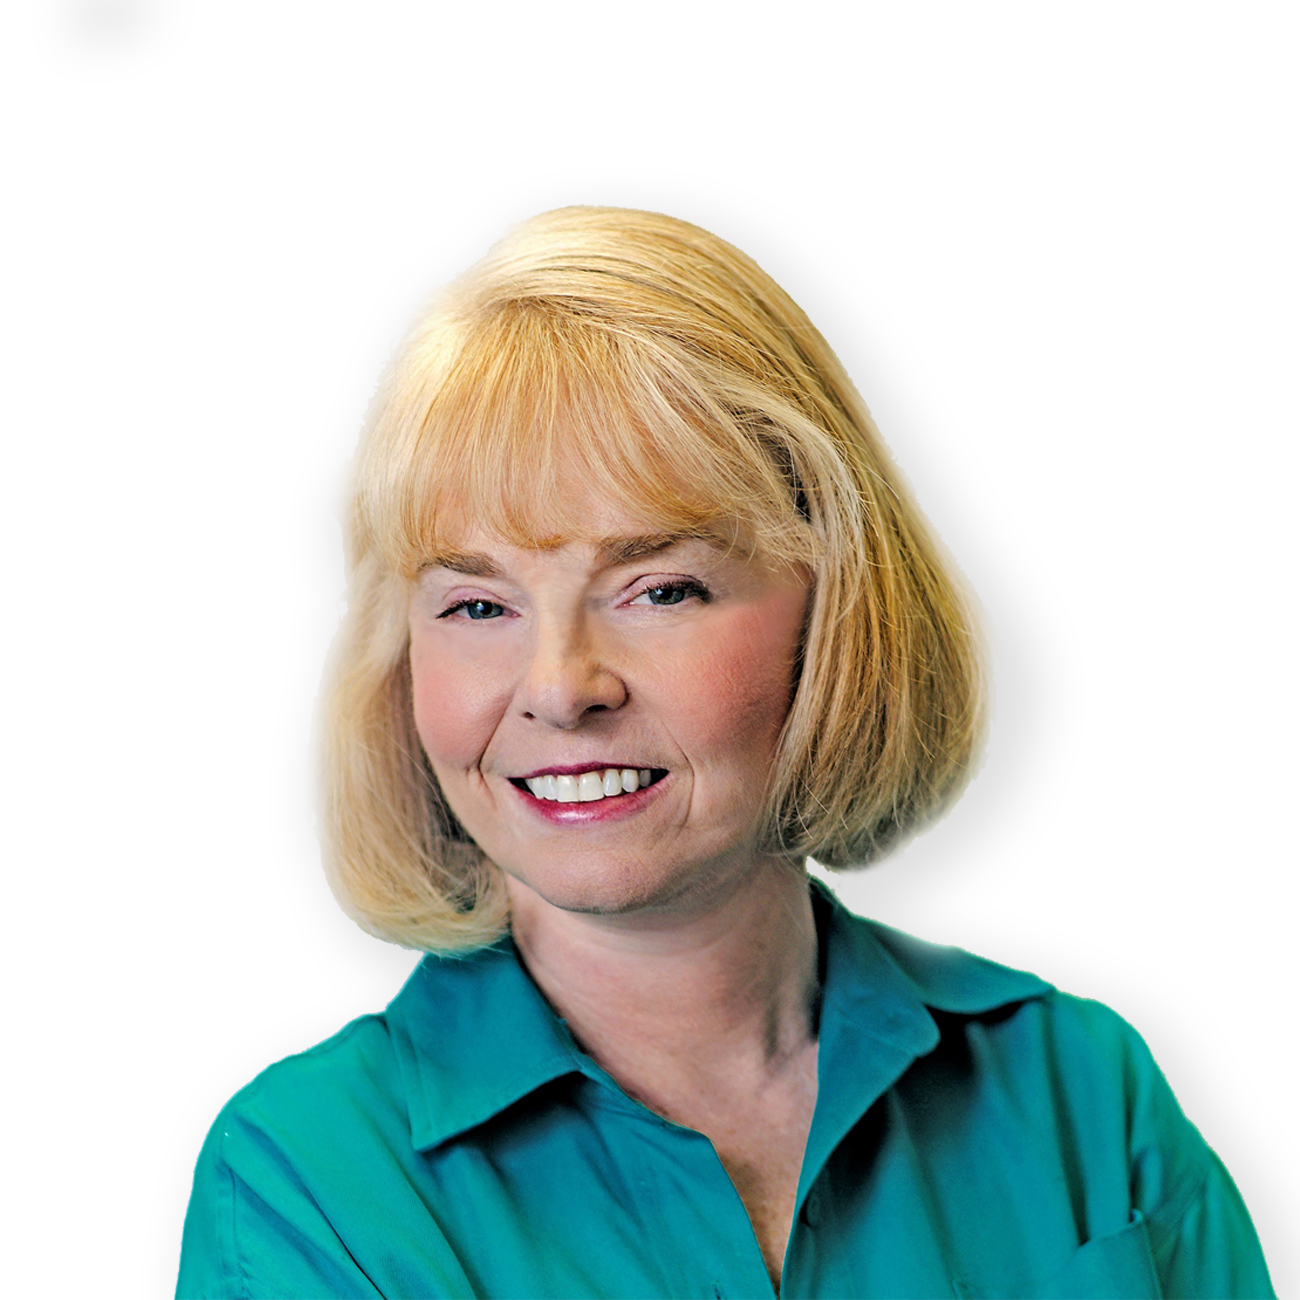 Mary Kay Chandler, Commercial Real Estate Broker / Agent, North Carolina & Florida